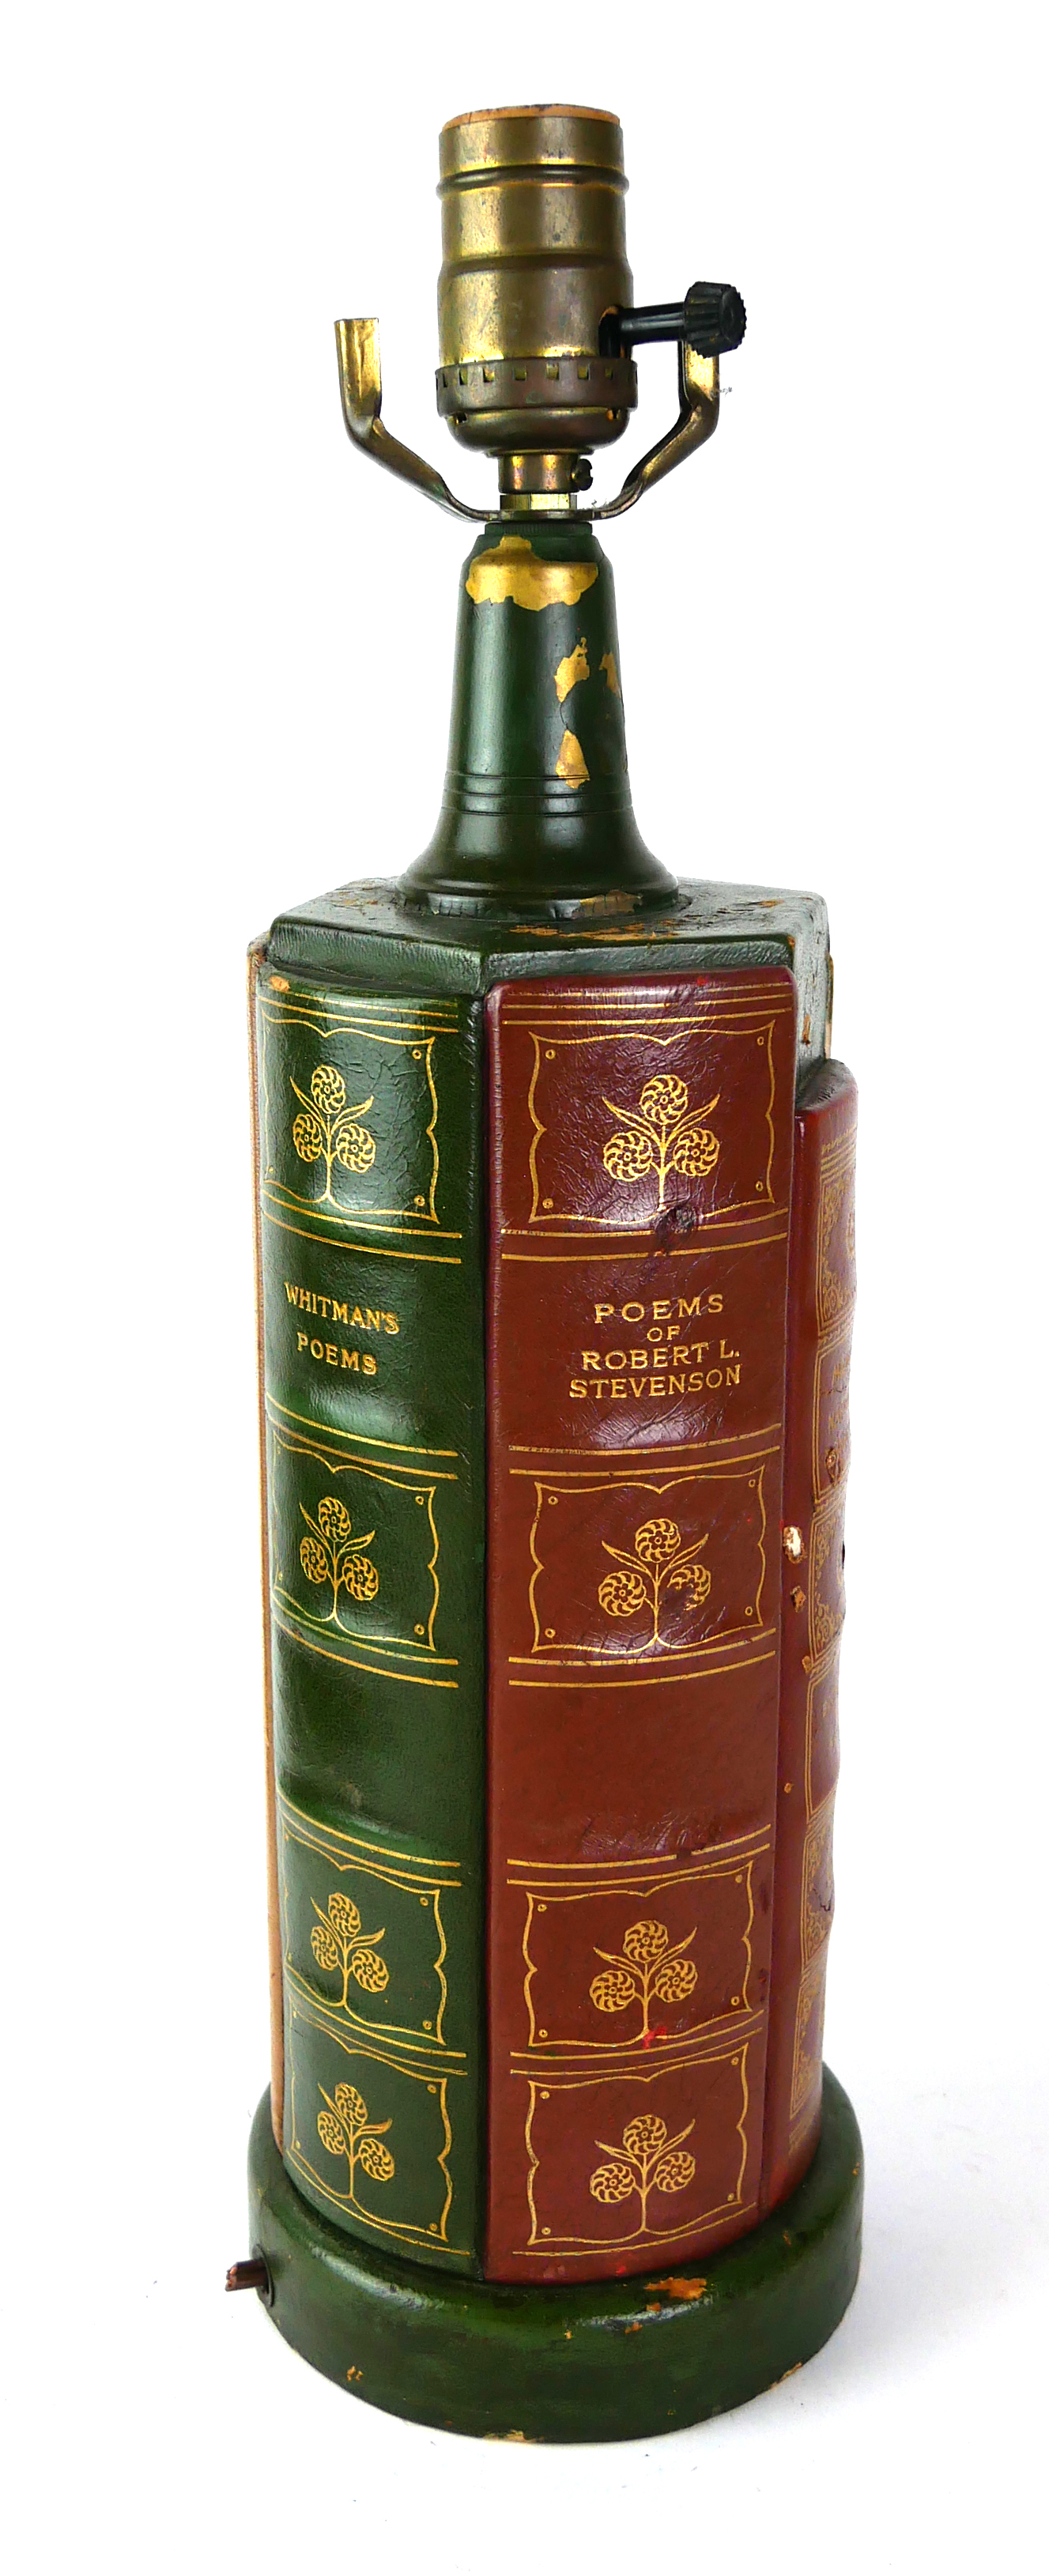 A NOVELTY LEATHER BOUND HARDBACK 'BOOK' LAMP Set with the spines of various books including 'The